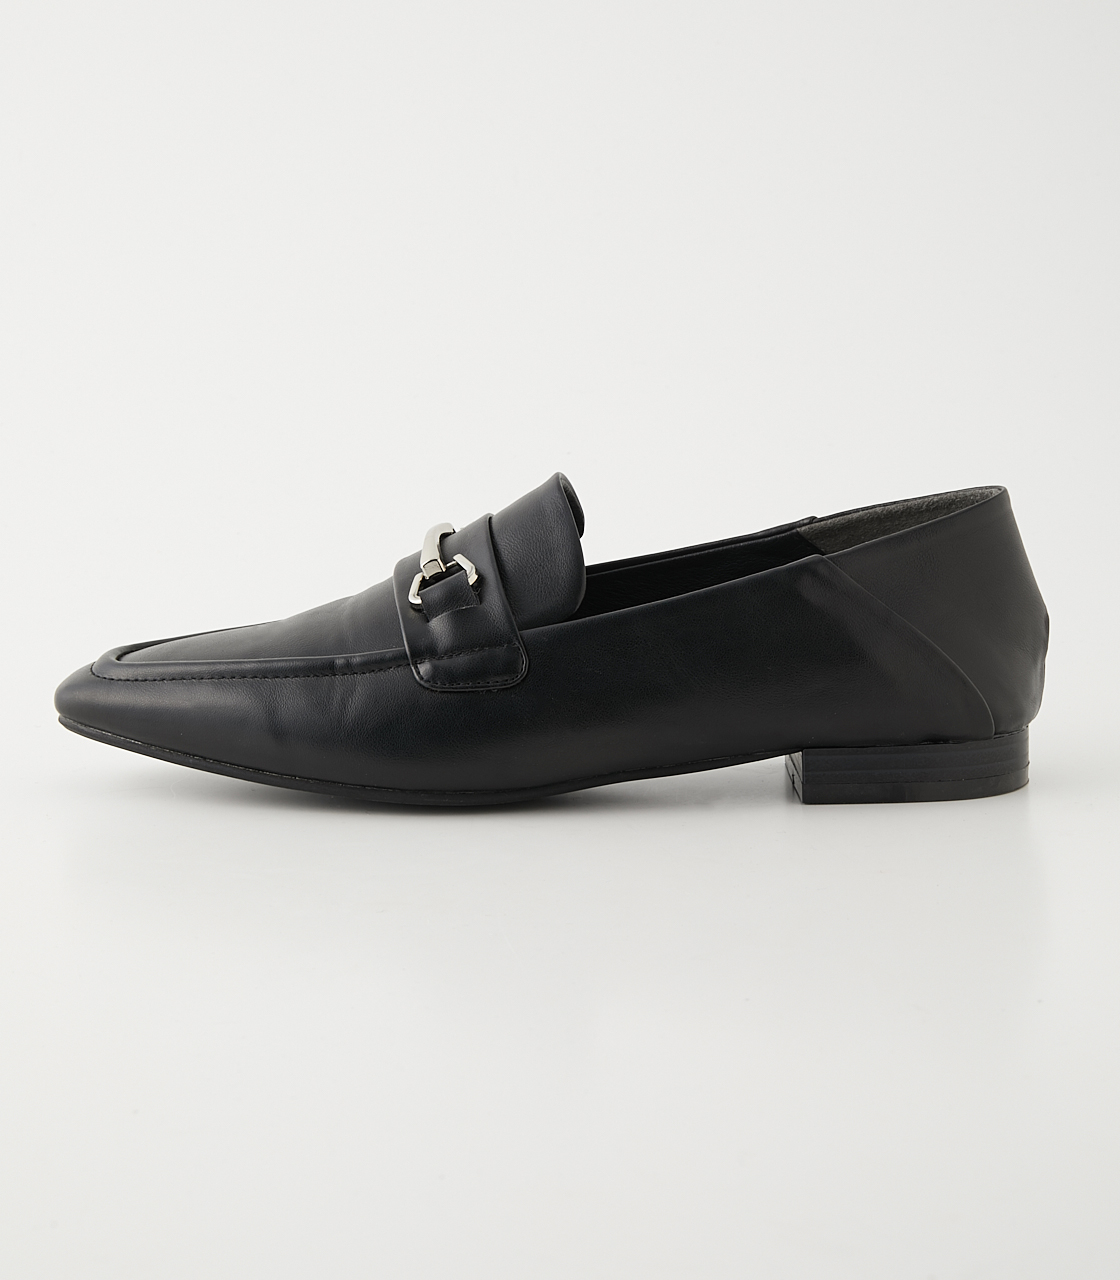 BABOUCHE LOAFER/バブーシュローファー 詳細画像 BLK 1